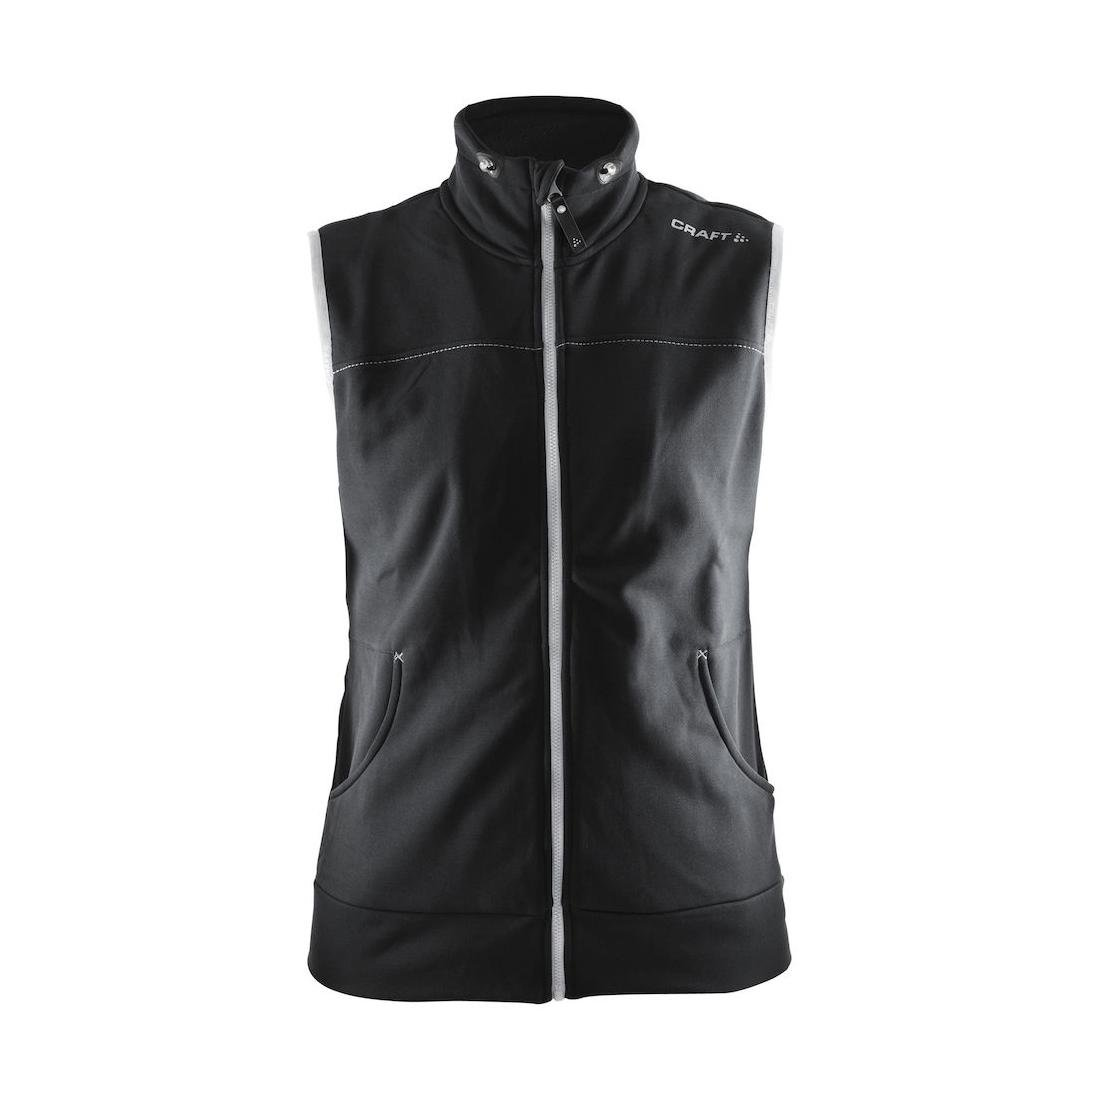 Craft Women's Leisure Casual Training Sportswear Vest with Pockets, Galactic/Black, Small by Craft (Image #1)